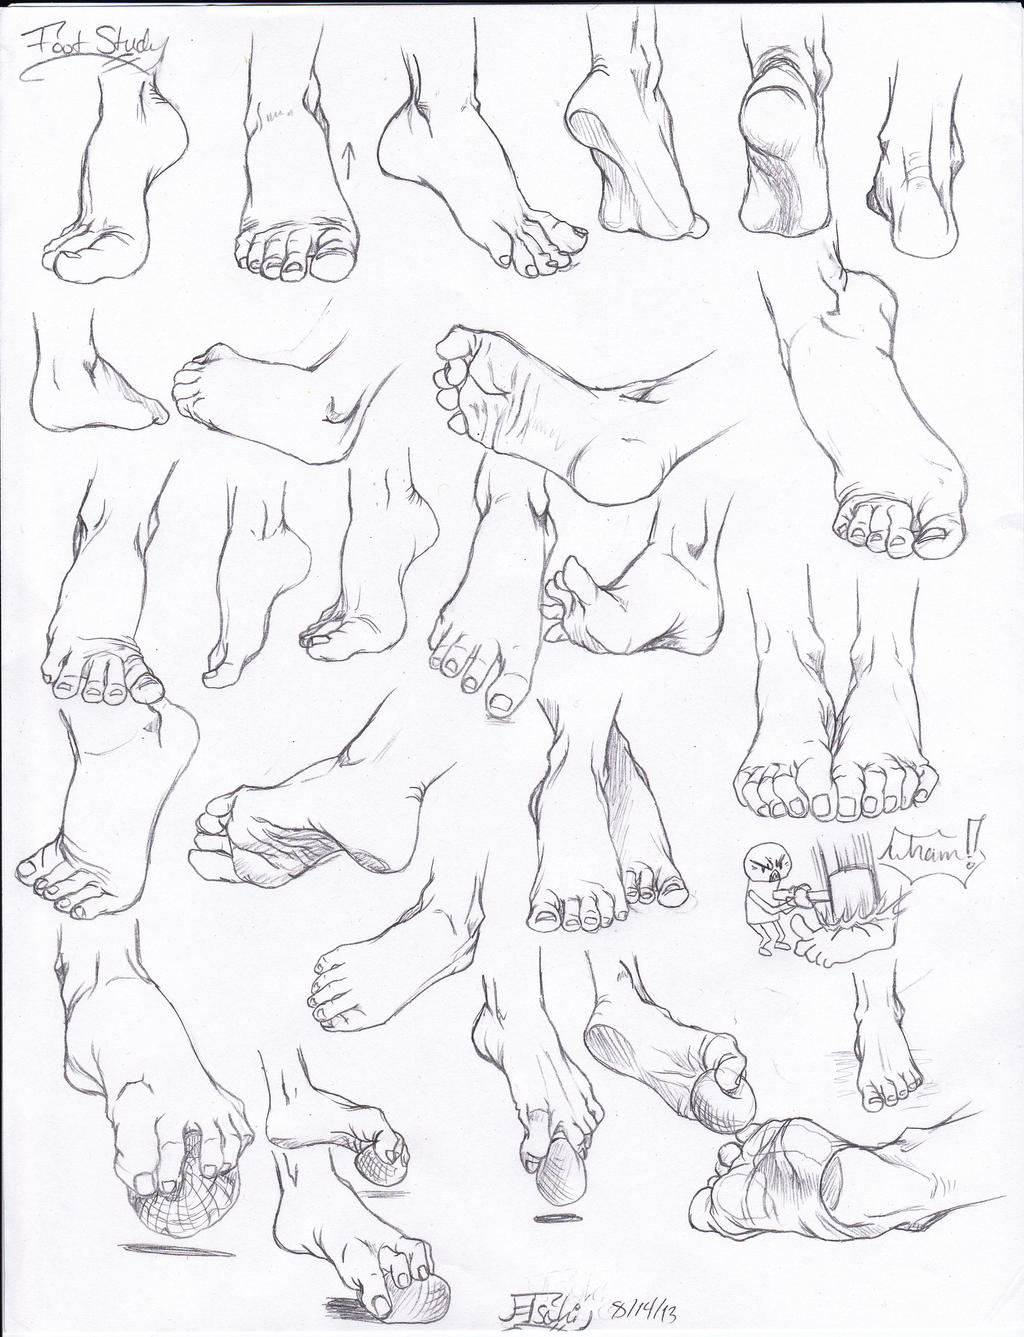 Foot study by Tsuki-Nii on DeviantArt